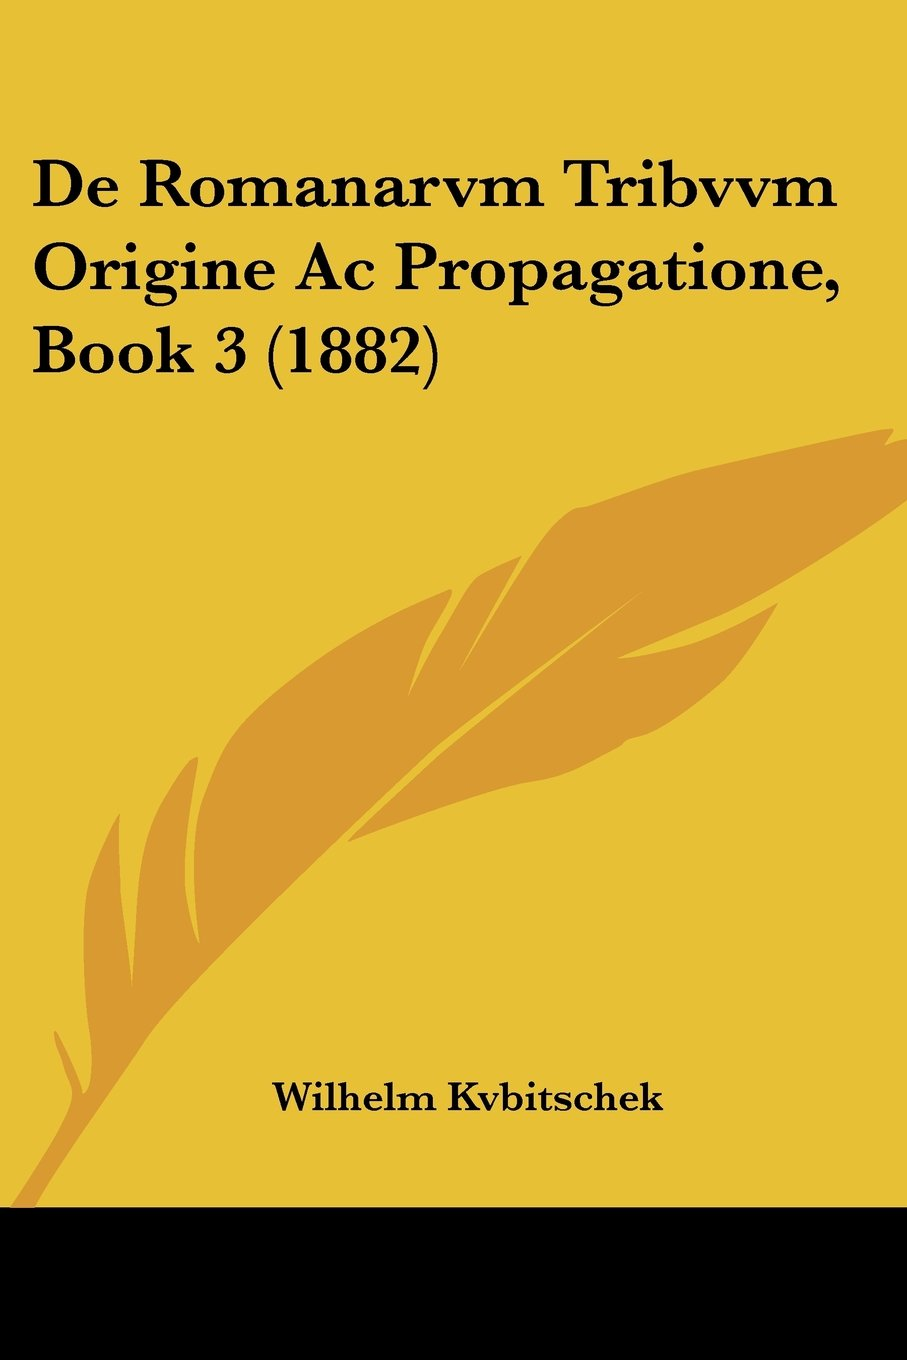 Download De Romanarvm Tribvvm Origine Ac Propagatione, Book 3 (1882) (Latin Edition) PDF